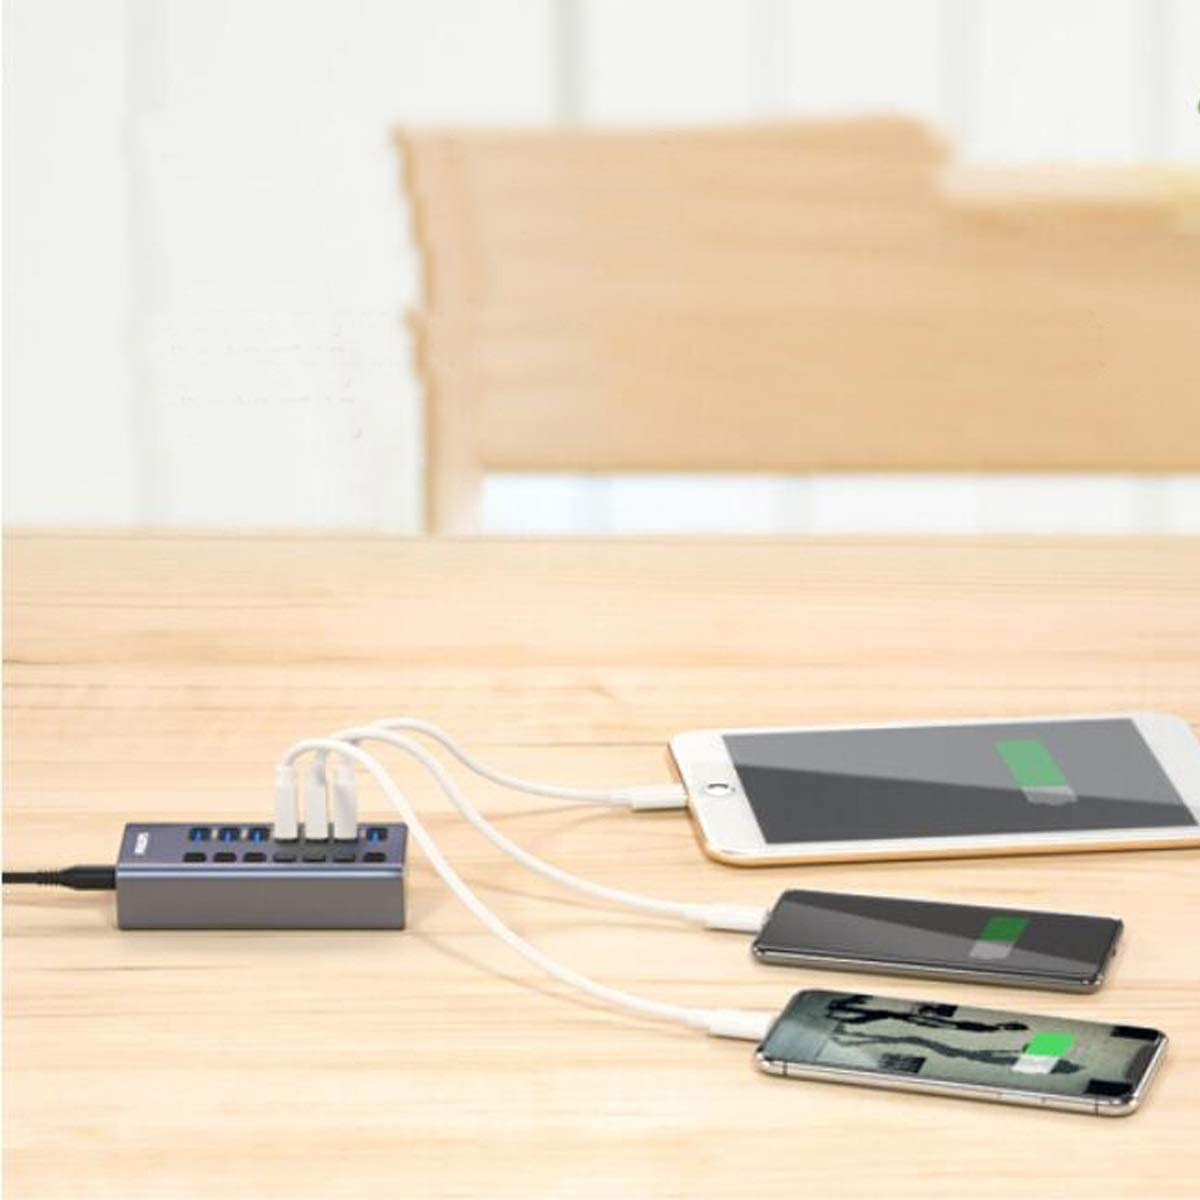 High Speed Extended 7-Port HUB Hub with 12V2A Power Adapter Solid USB Splitter 3.0 Yougou Hub Color : Gray